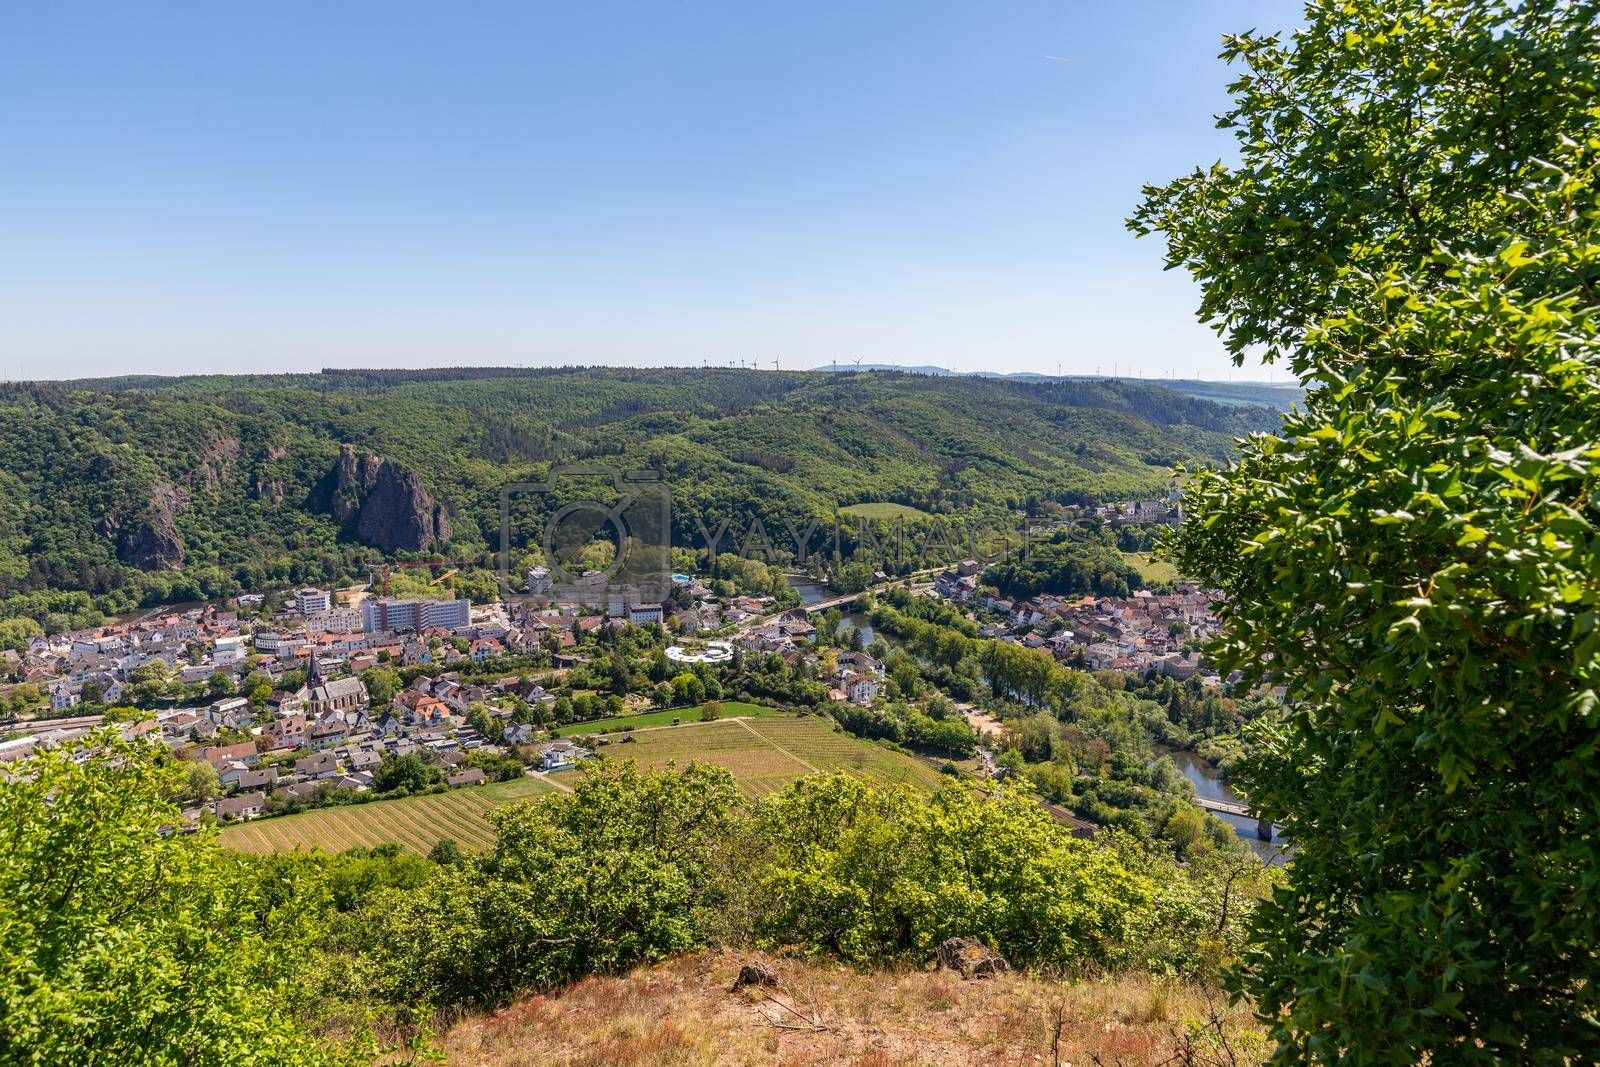 High angle view from the Rotenfels of Bad Muenster am Stein Ebernburg with the Nahe River, Germany